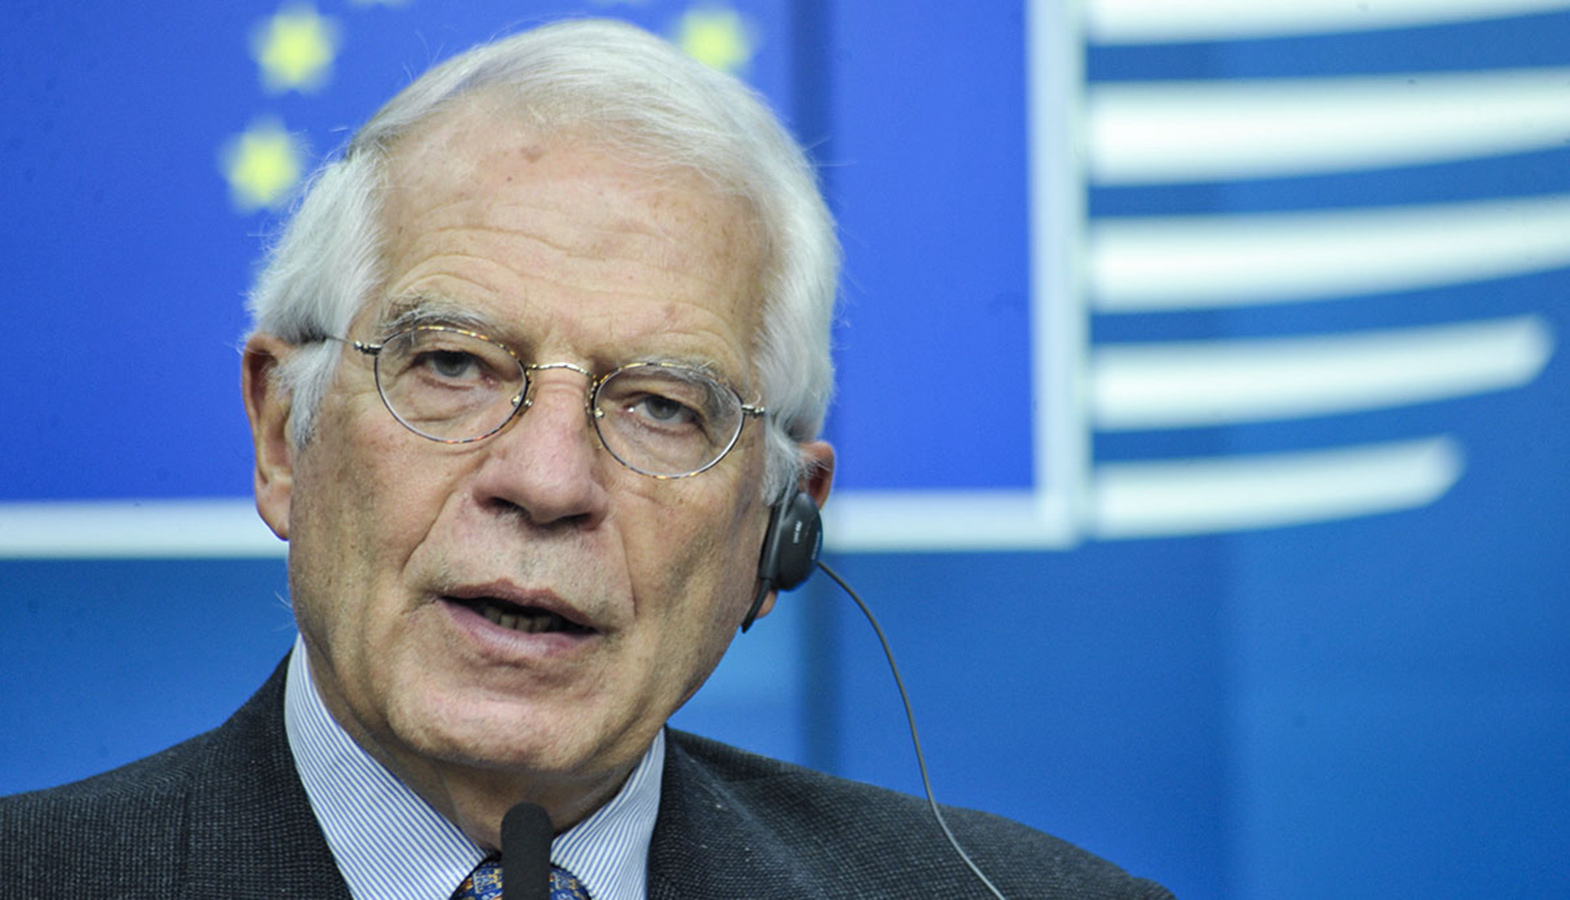 Josep Borrell: Europe Intends To Speed Up The Adoption Of Sanctions Against Belarus